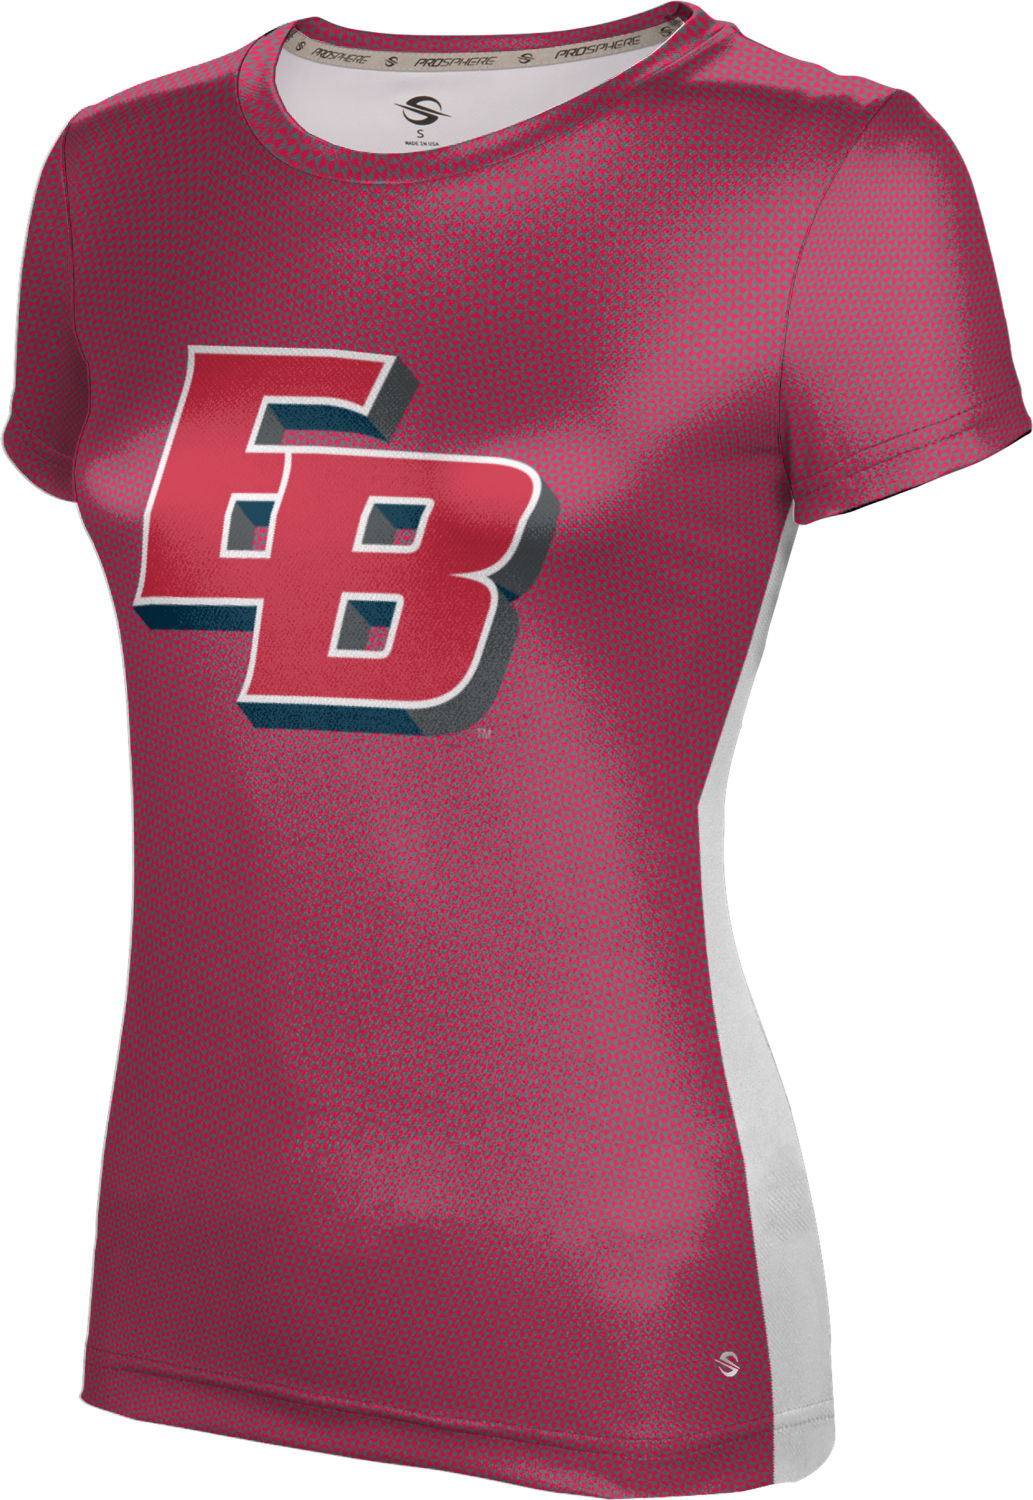 ProSphere Girls' California State University East Bay Embrace Tech Tee